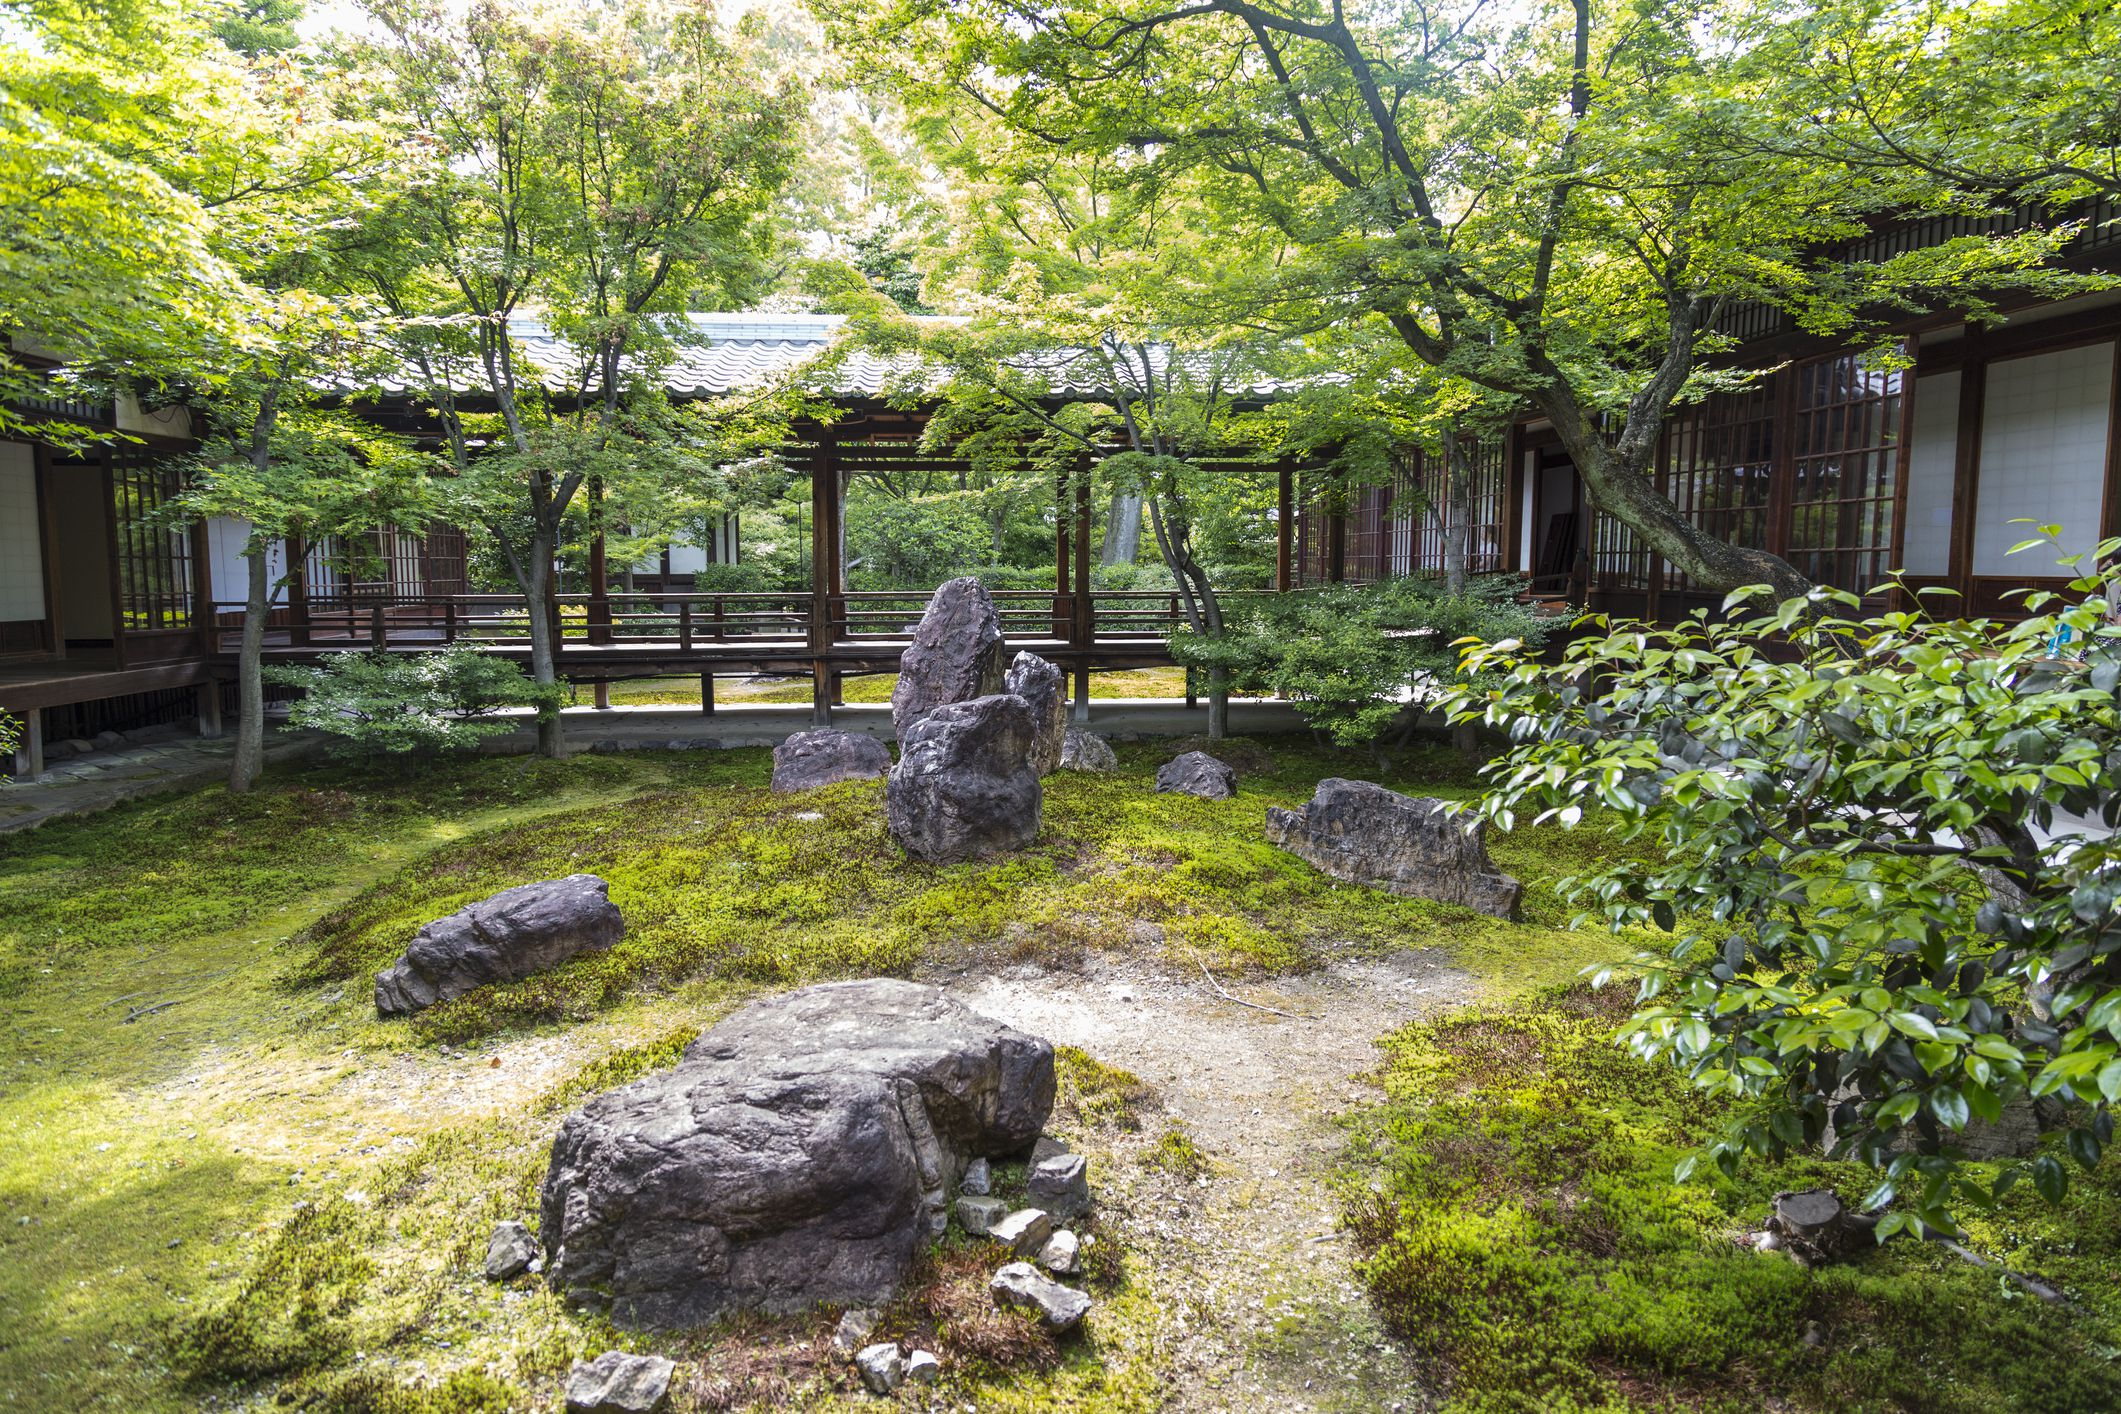 add_a_photo Embed Share Buy the print Comp Save to Board stone garden in Kennin-ji temple